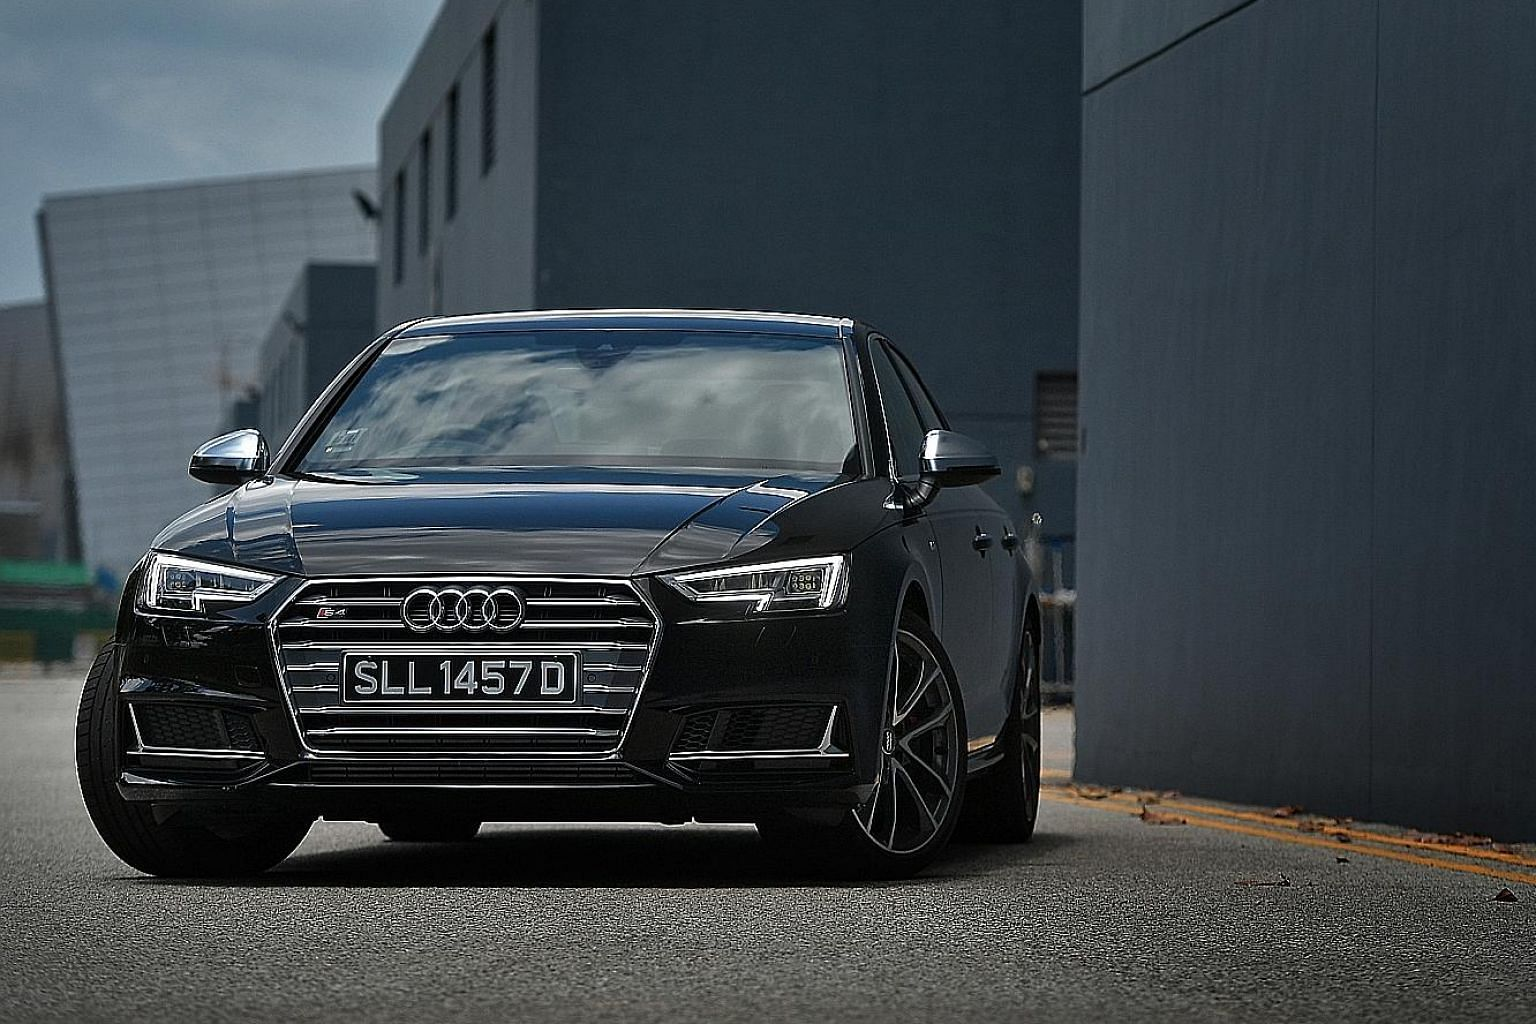 Audi's S4 has been upsized and offers an effortless commute whether it is racing or not.